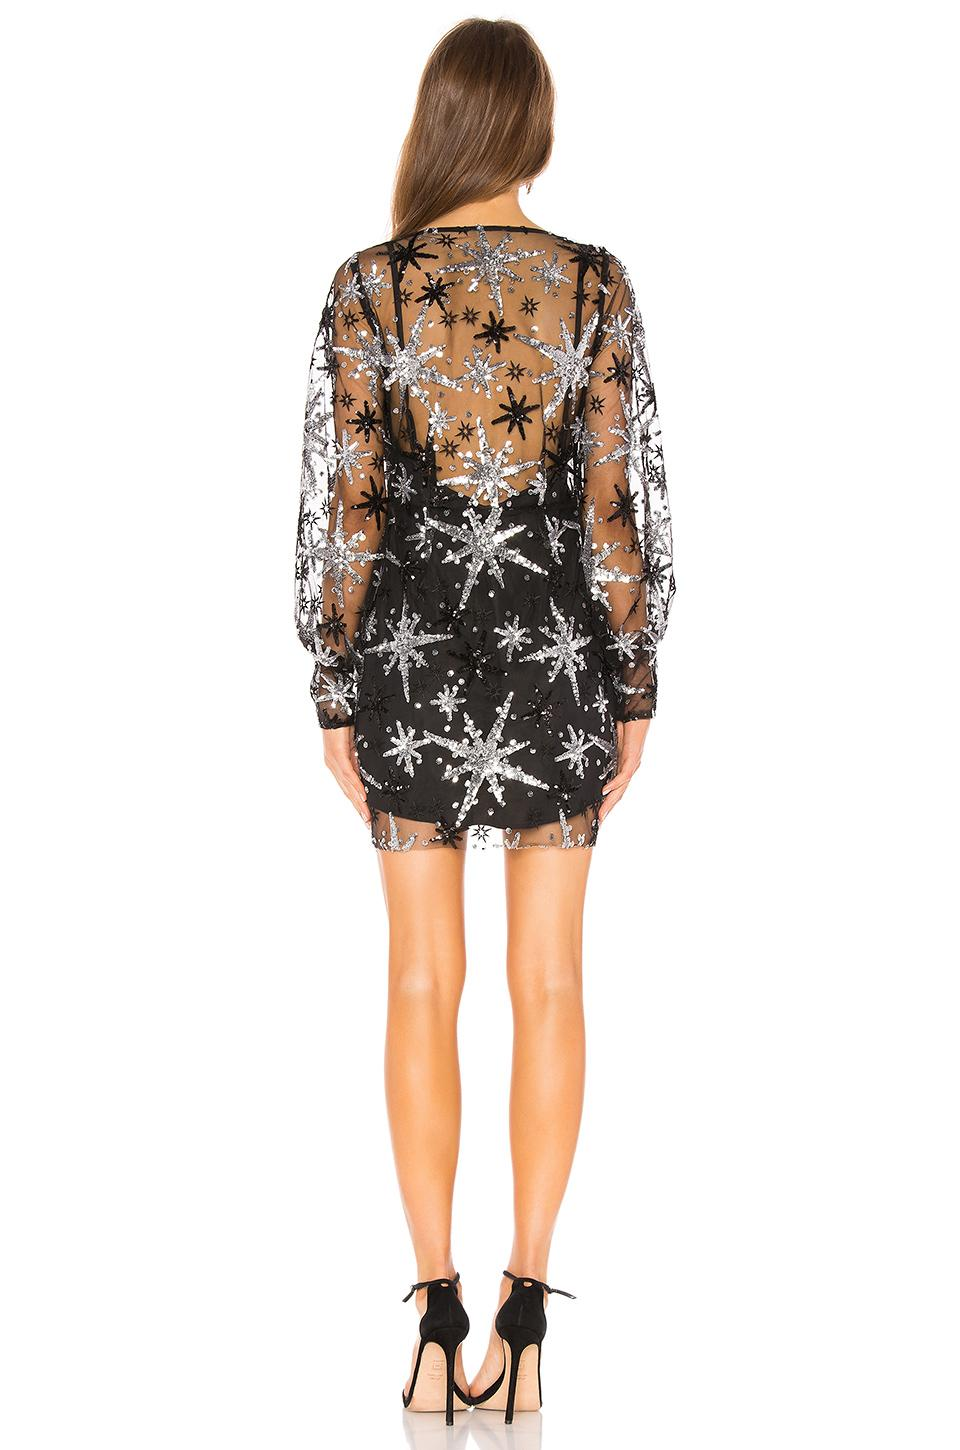 63961f108aab For Love & Lemons Stardust Mini Dress in Black - Save 70% - Lyst